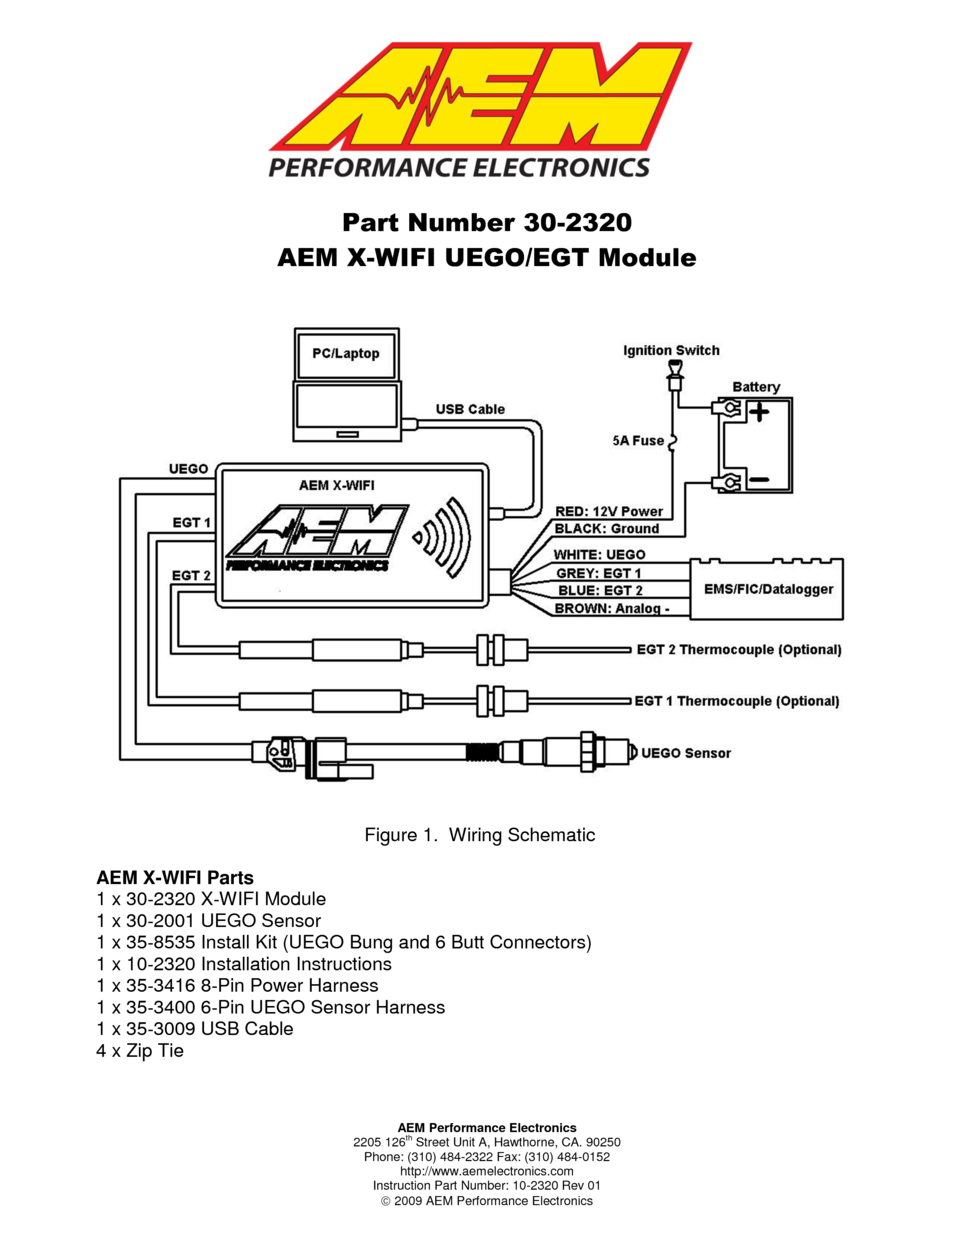 Aem Uego Wiring Harness 23 Diagram Images Diagrams W960 Xwifi Wideband Egt Controller 302067 1478598661 D 0 User